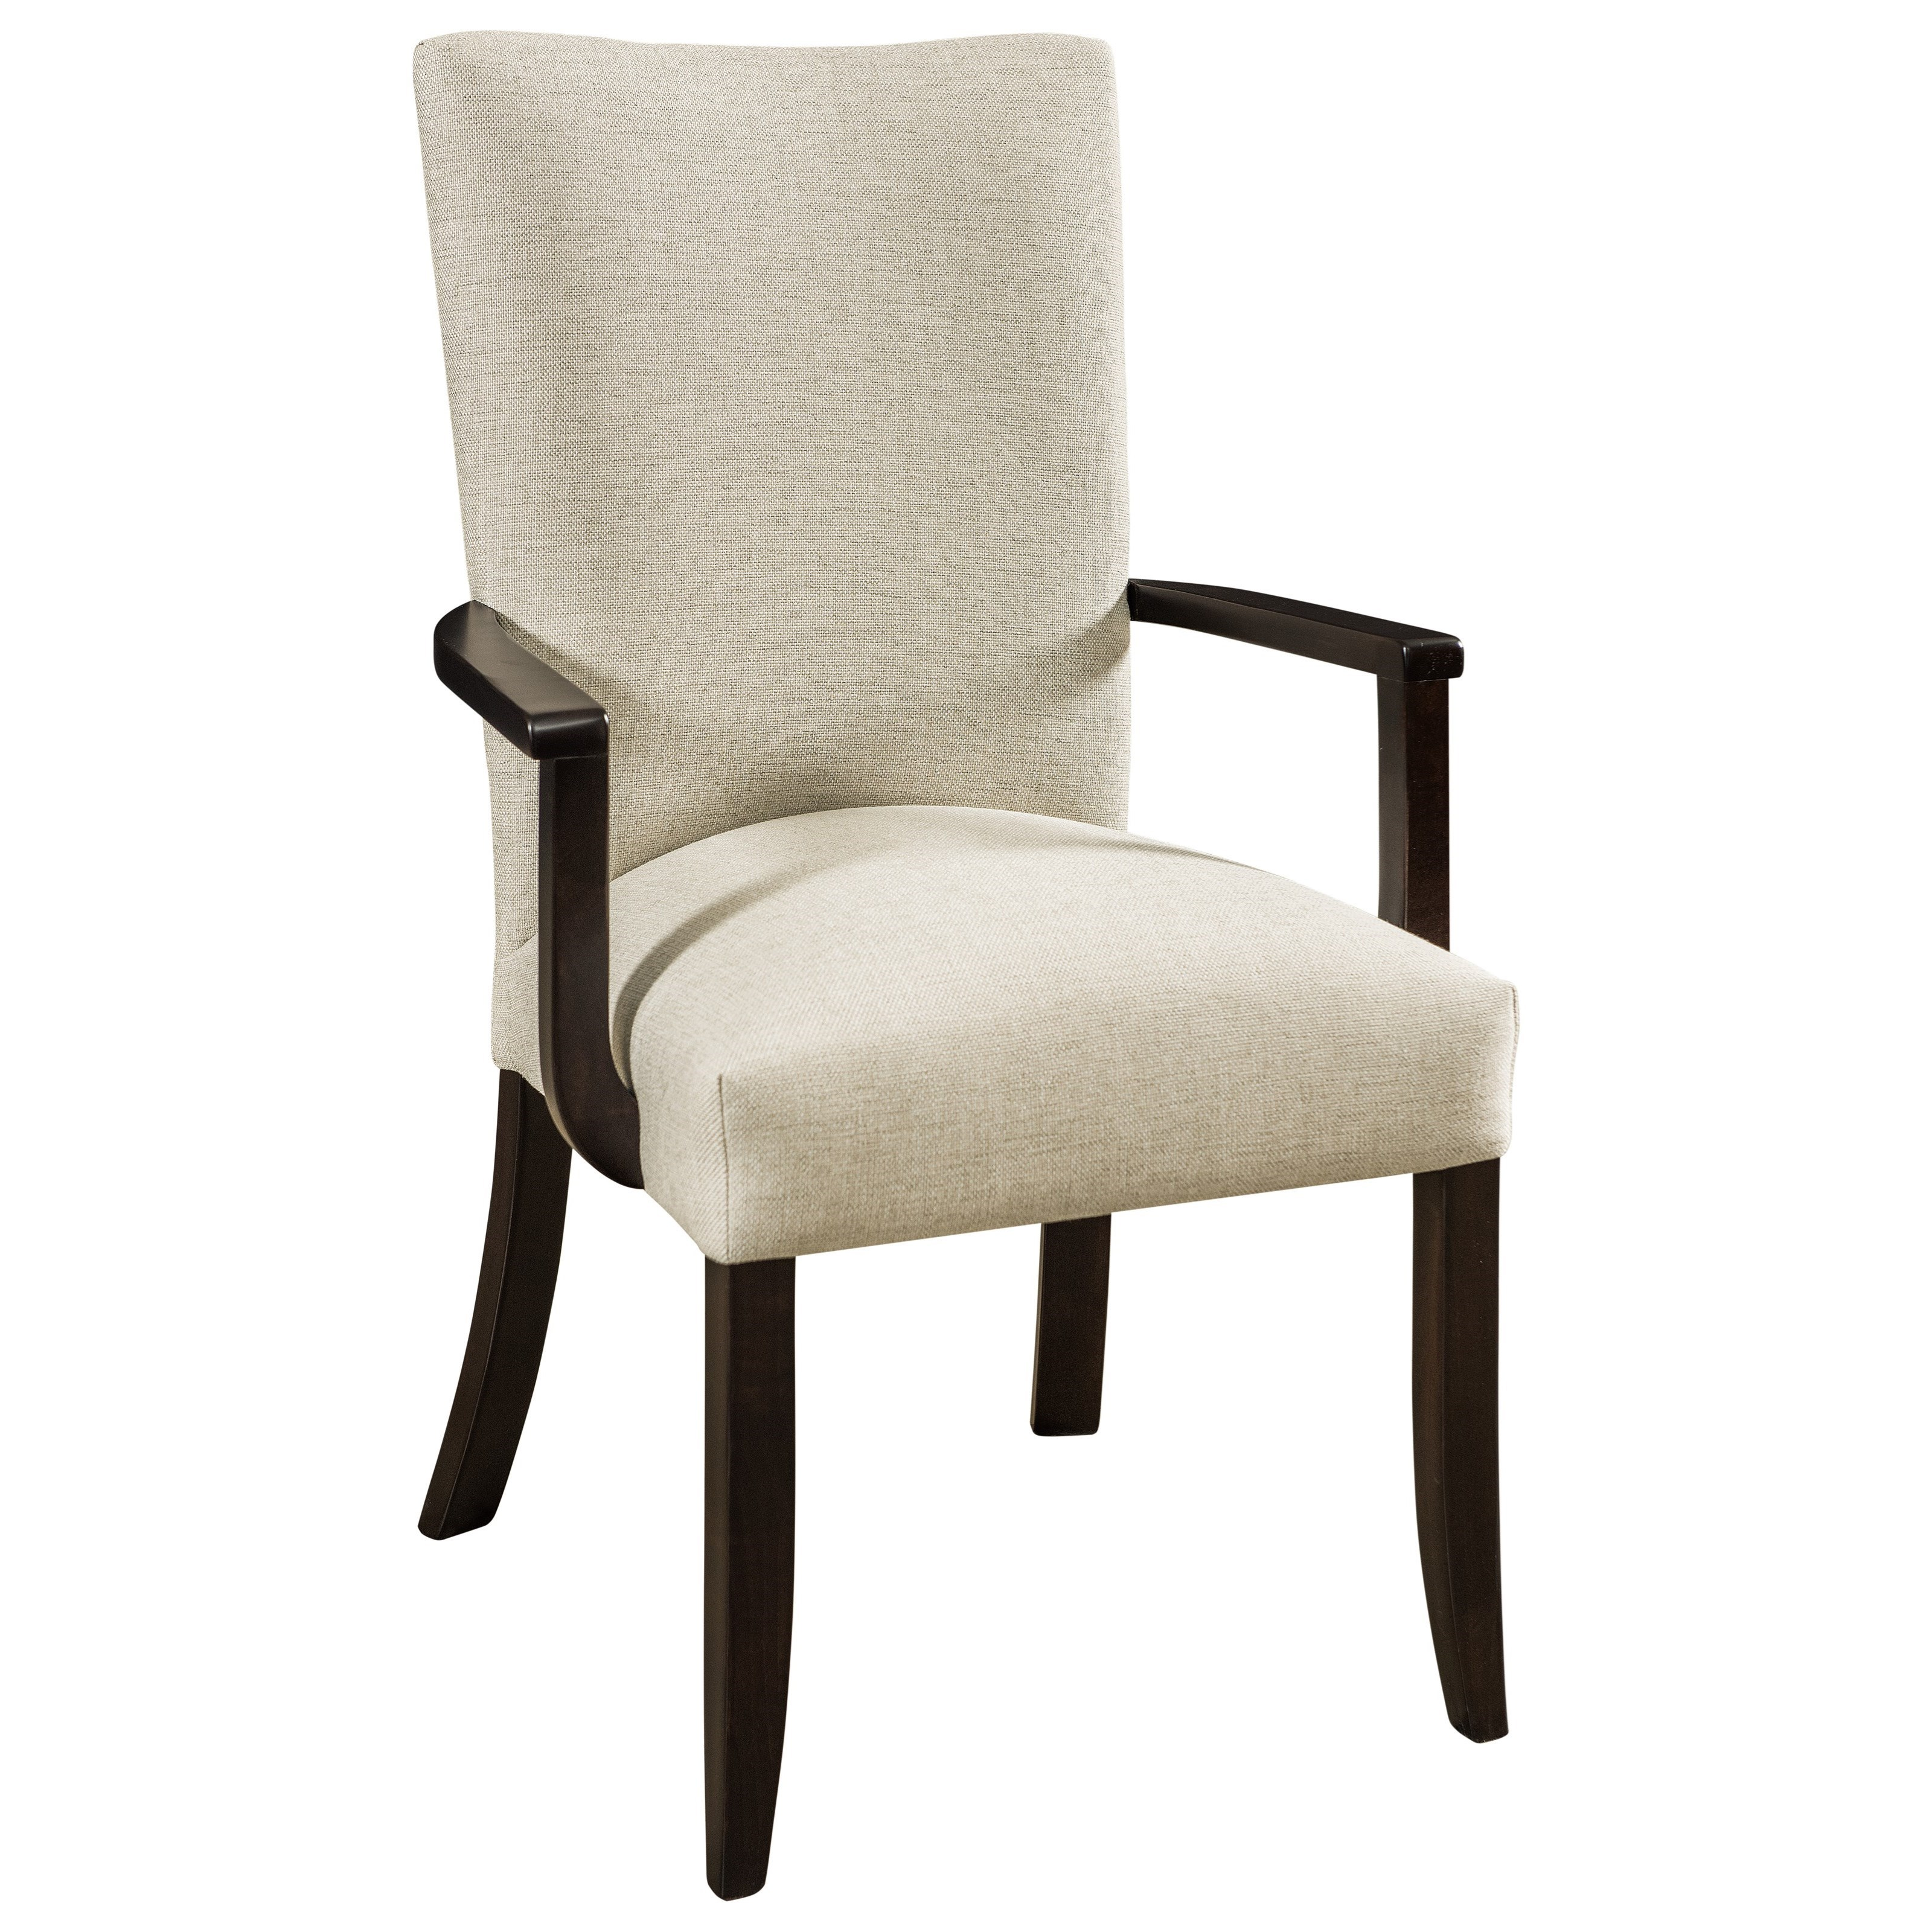 Trenton Customizable Solid Wood Arm Chair by F&N Woodworking at Saugerties Furniture Mart